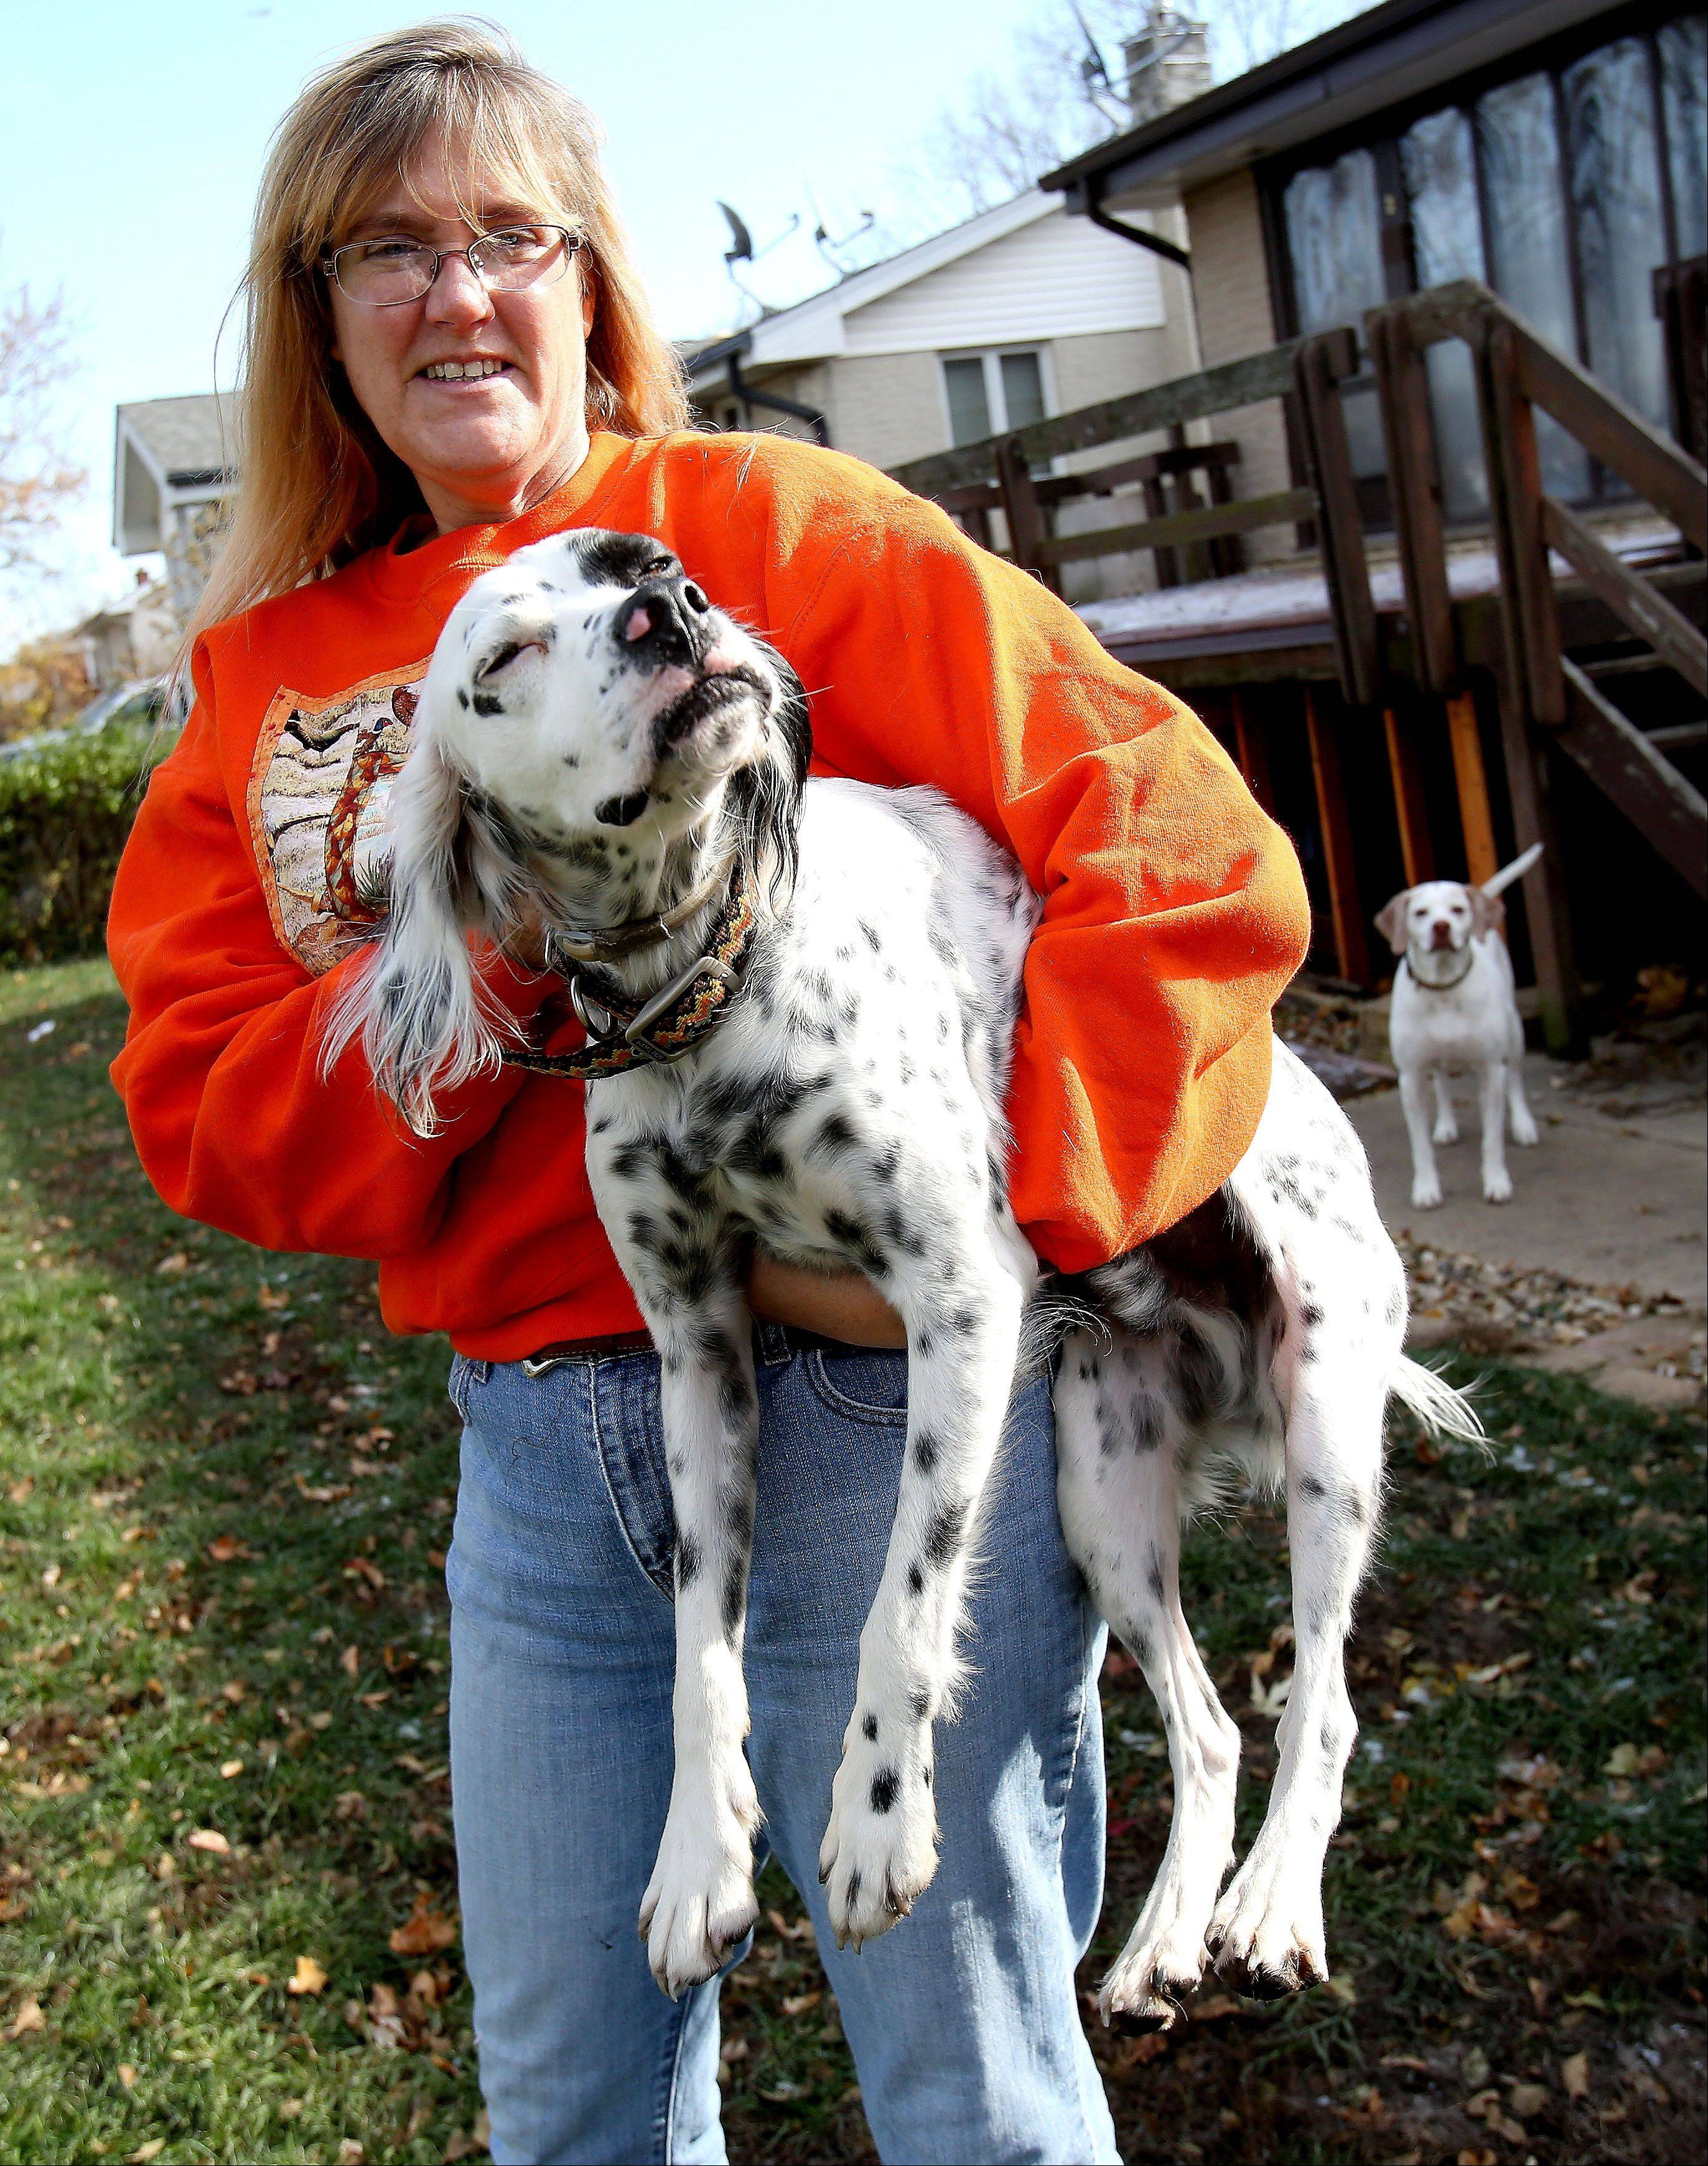 Lisa Spakowski of Wood Dale was given time Tuesday to ask the city council if she can keep all five dogs she cares for in her home rescue operation. City ordinance says three dogs is the limit in residential areas.